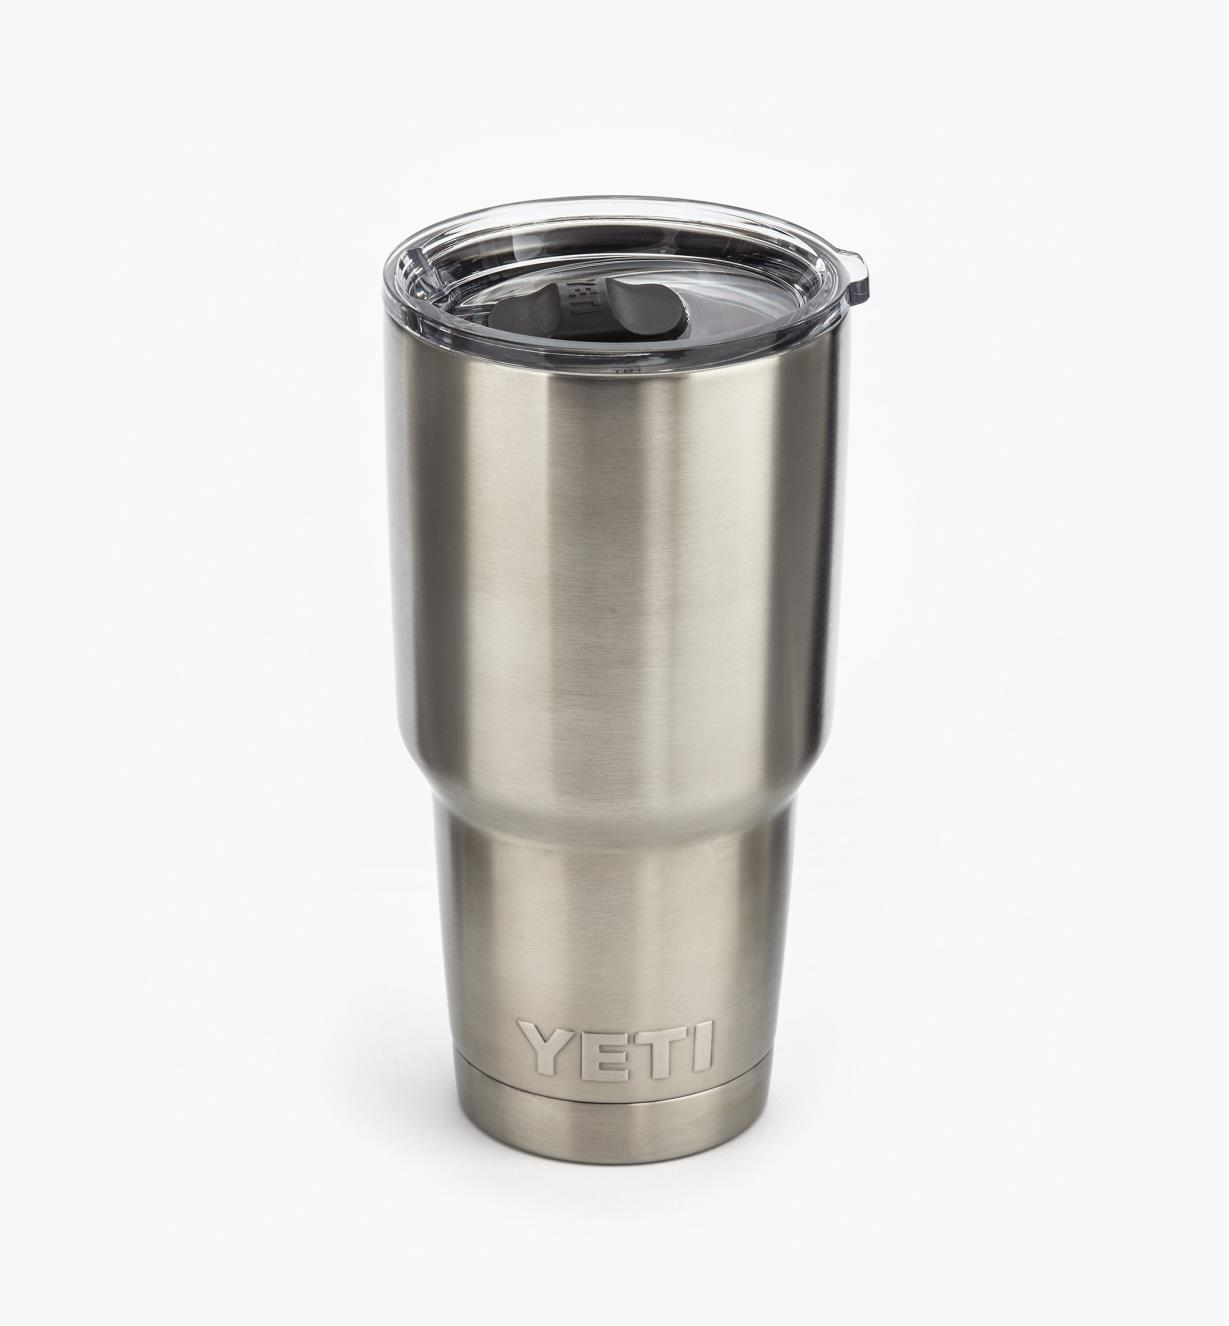 74K0042 - 30 oz Yeti Tumbler, Stainless Steel